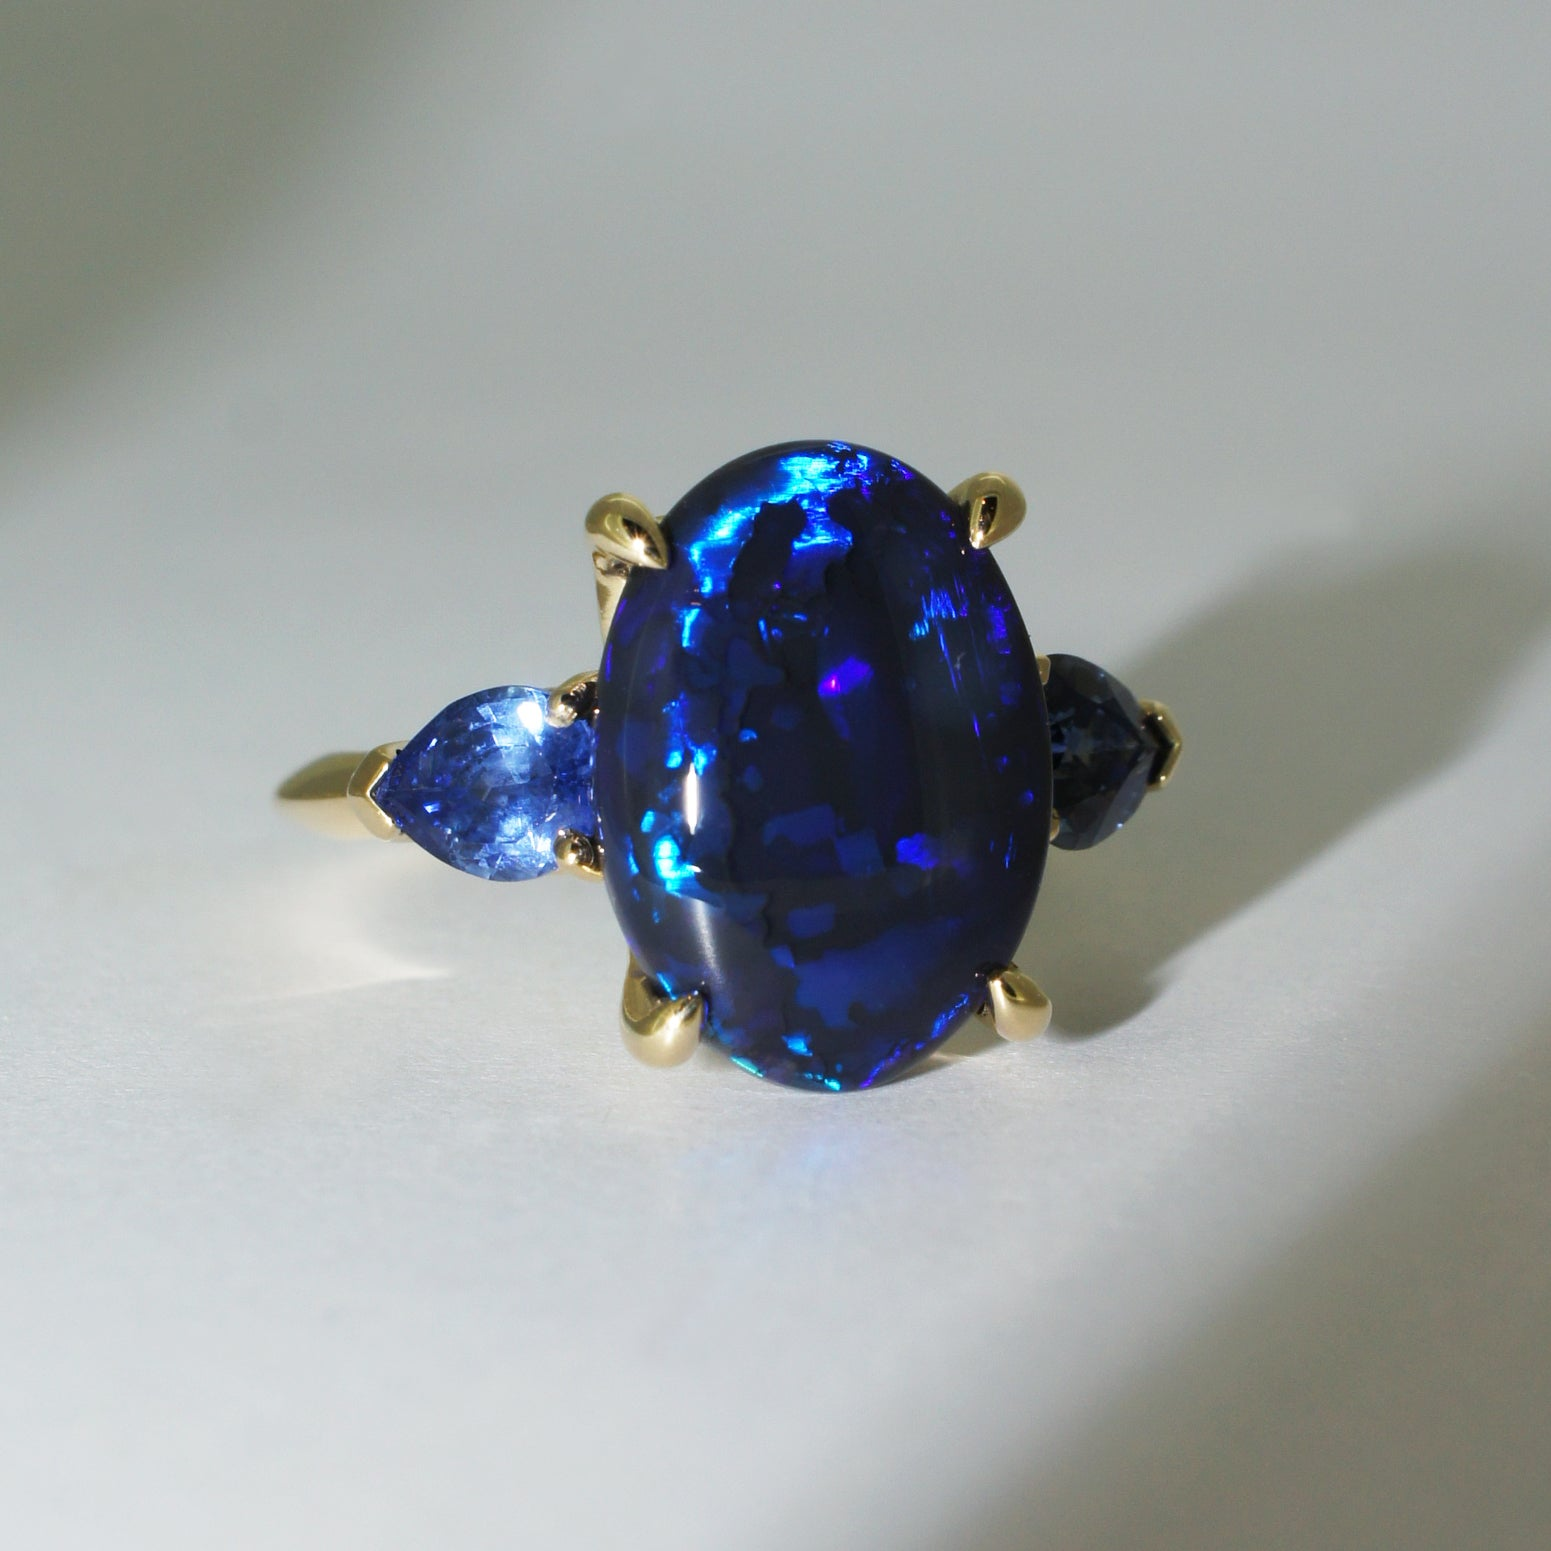 Custom-made-engagement-ring-Australian-black-opal-sapphires-by-Sydney-jeweller-Lizunova-Chifley-Square